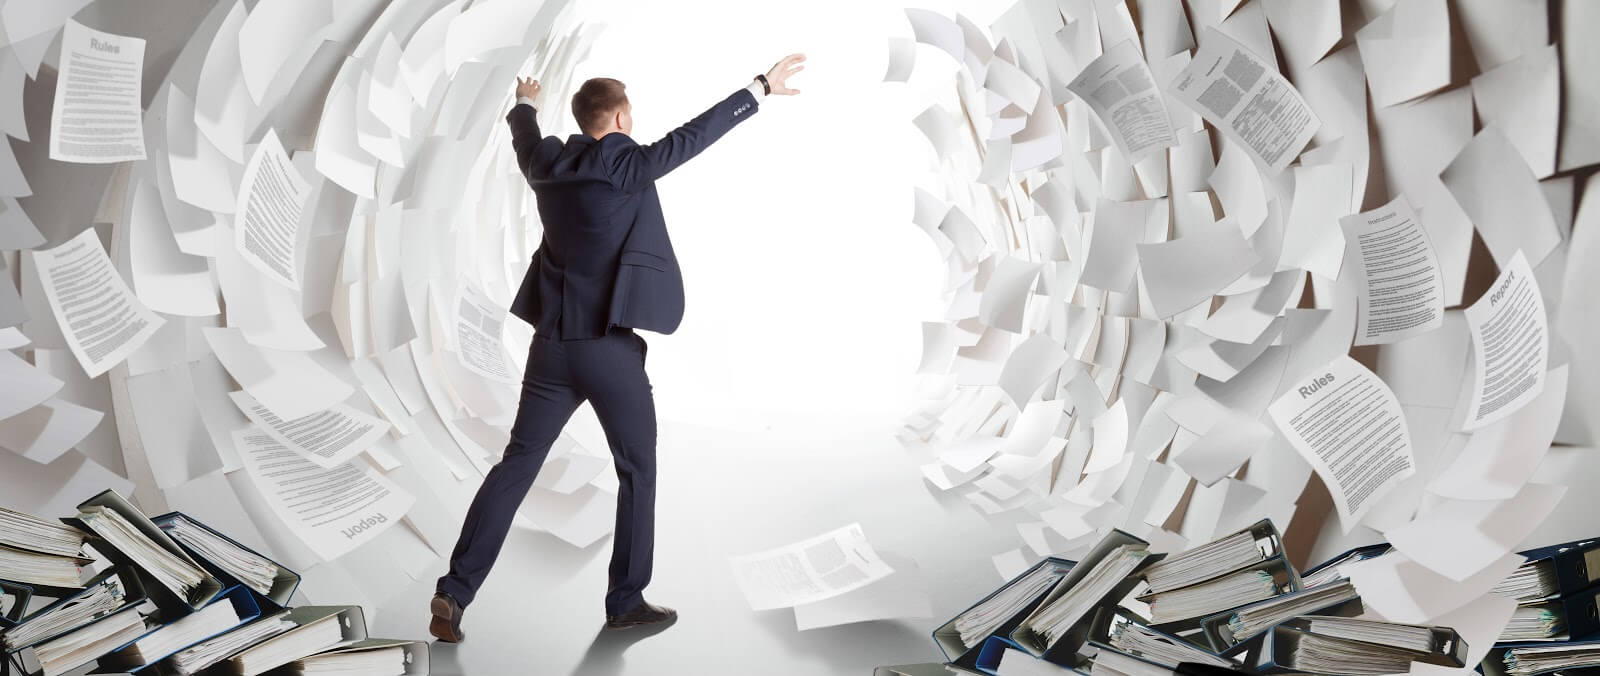 a man looking overwhelmed by a stack of paper